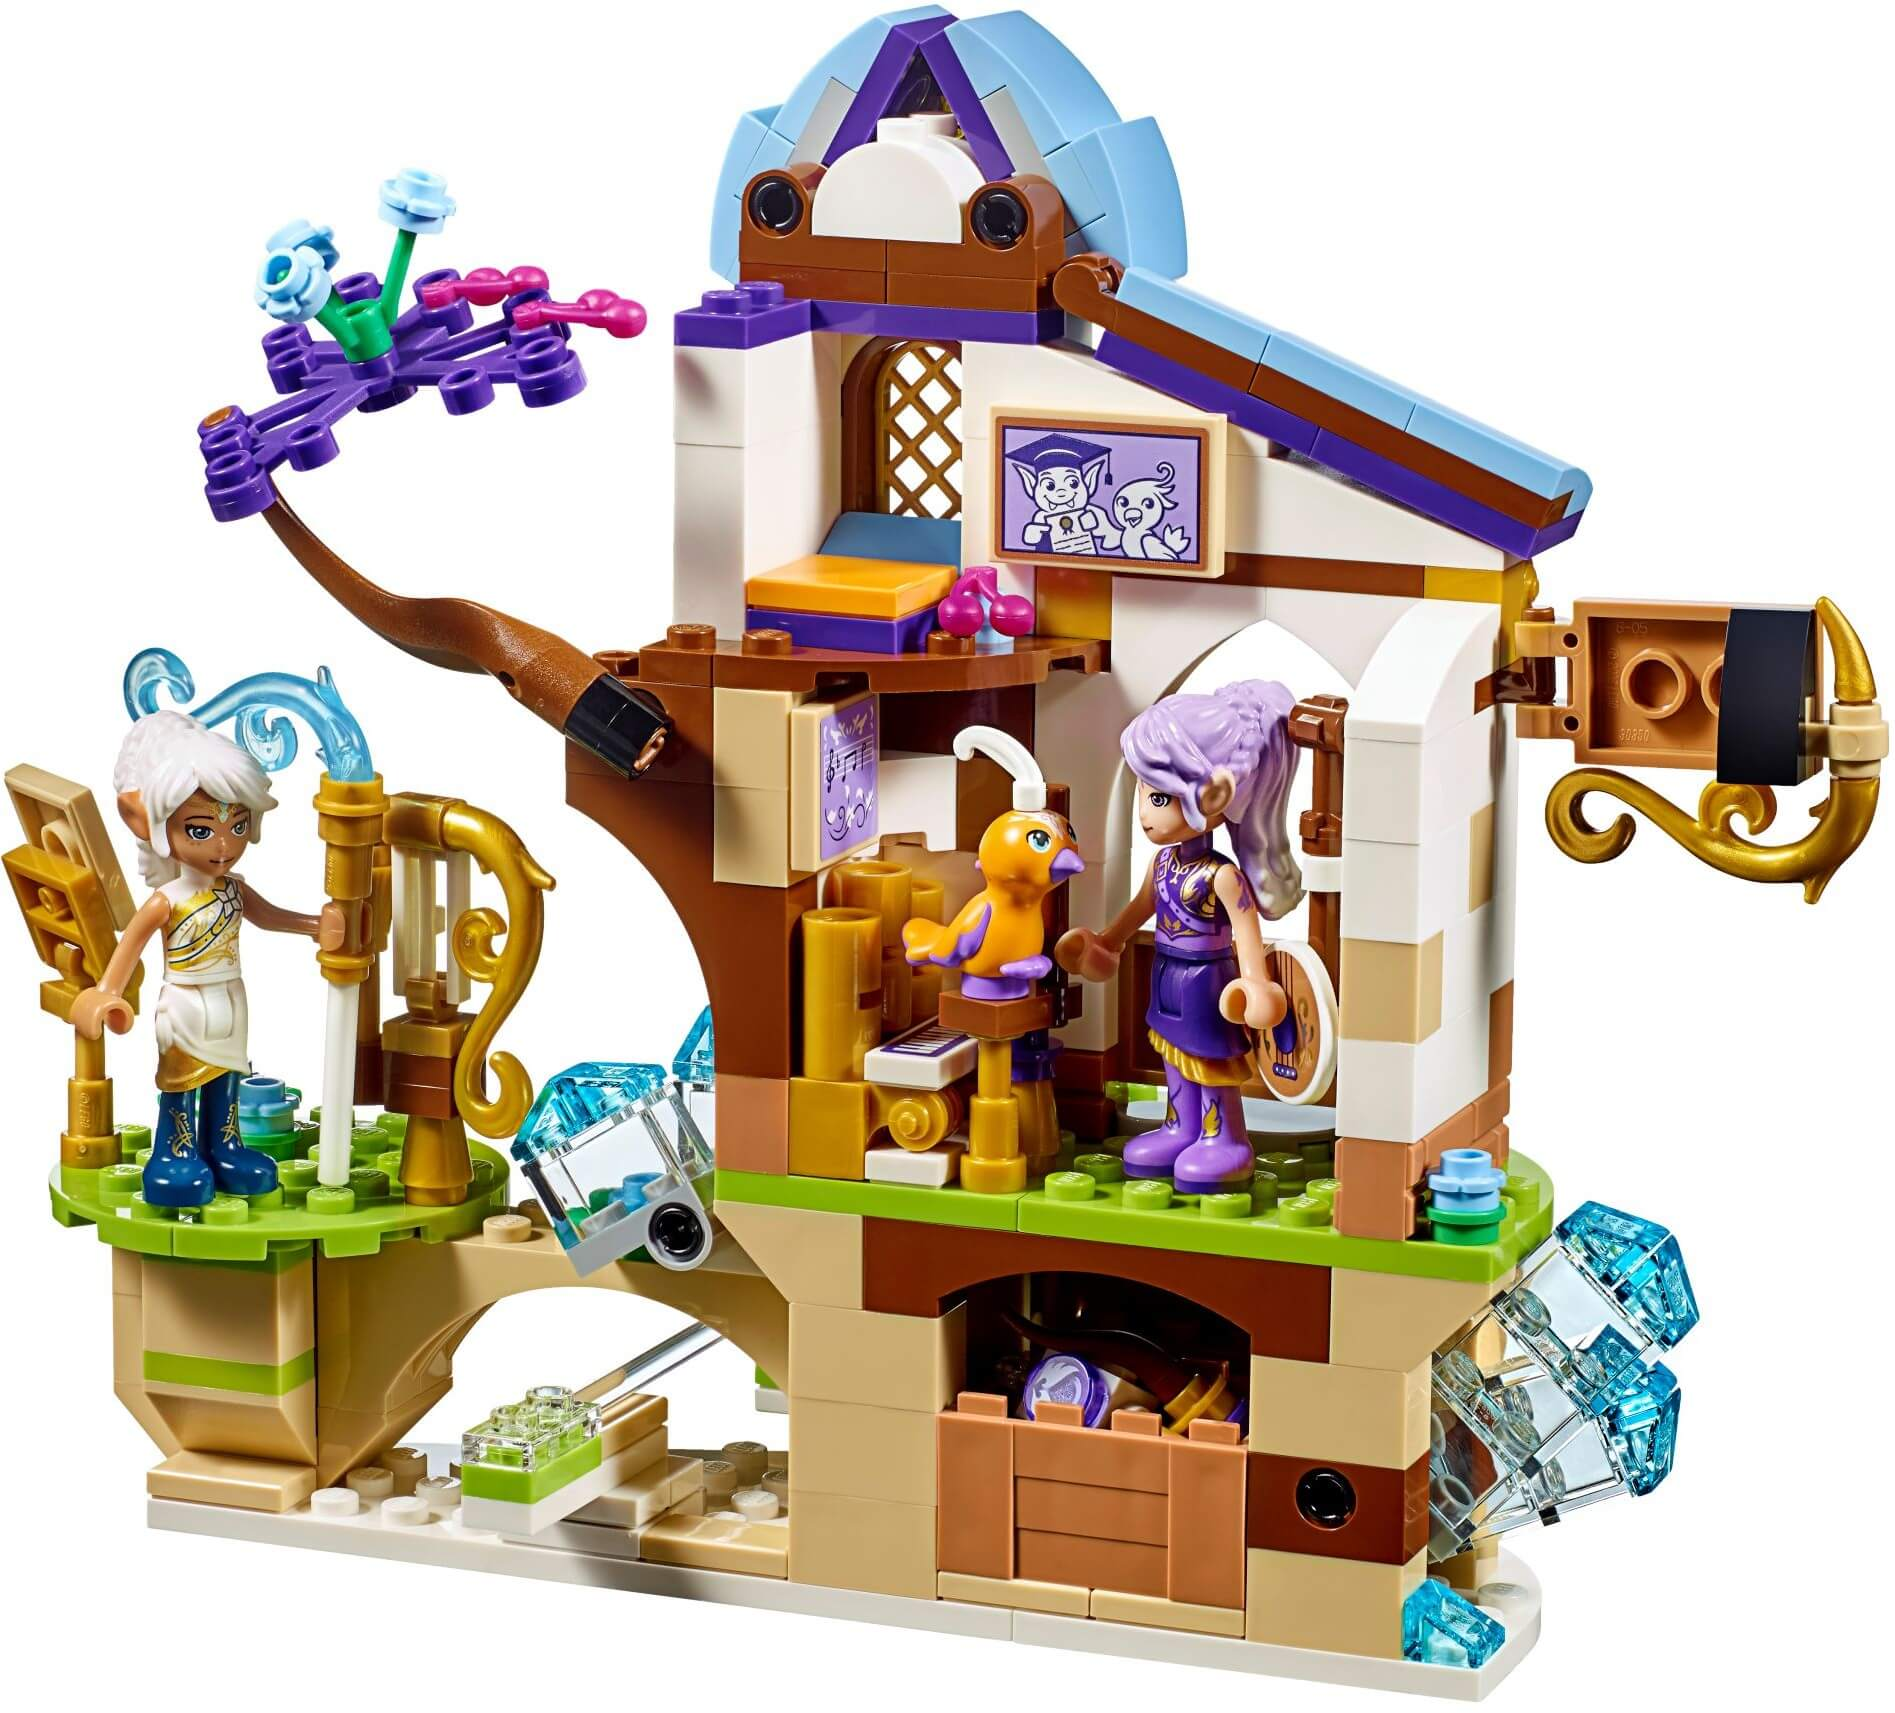 Mua đồ chơi LEGO 41193 - LEGO Elves 41193 - Rồng Gió của Aira (LEGO Elves 41193 Aira & the Song of the Wind Dragon)